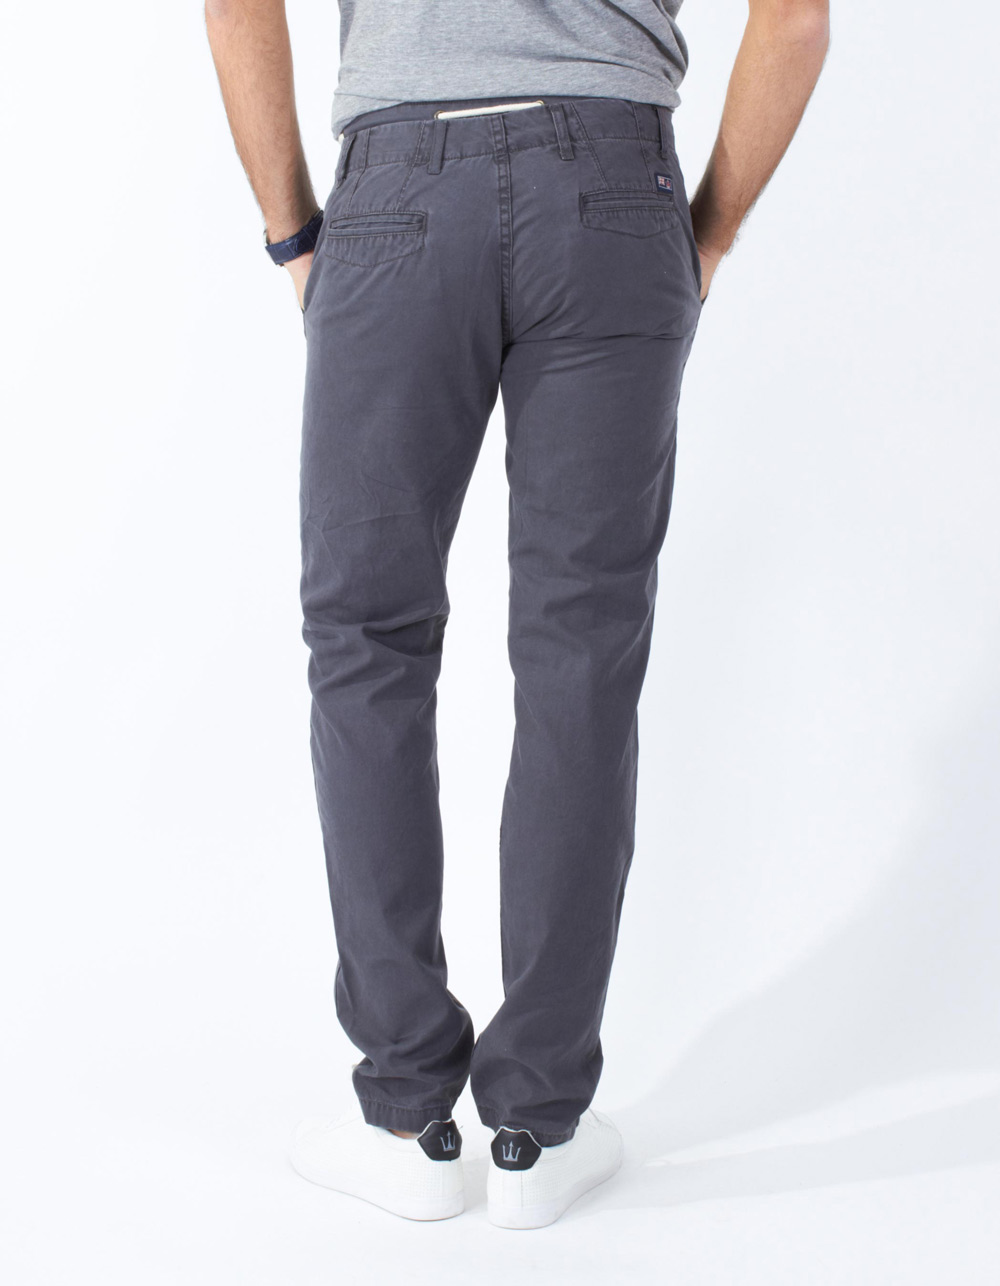 Grey chinos with double waistband - Backside